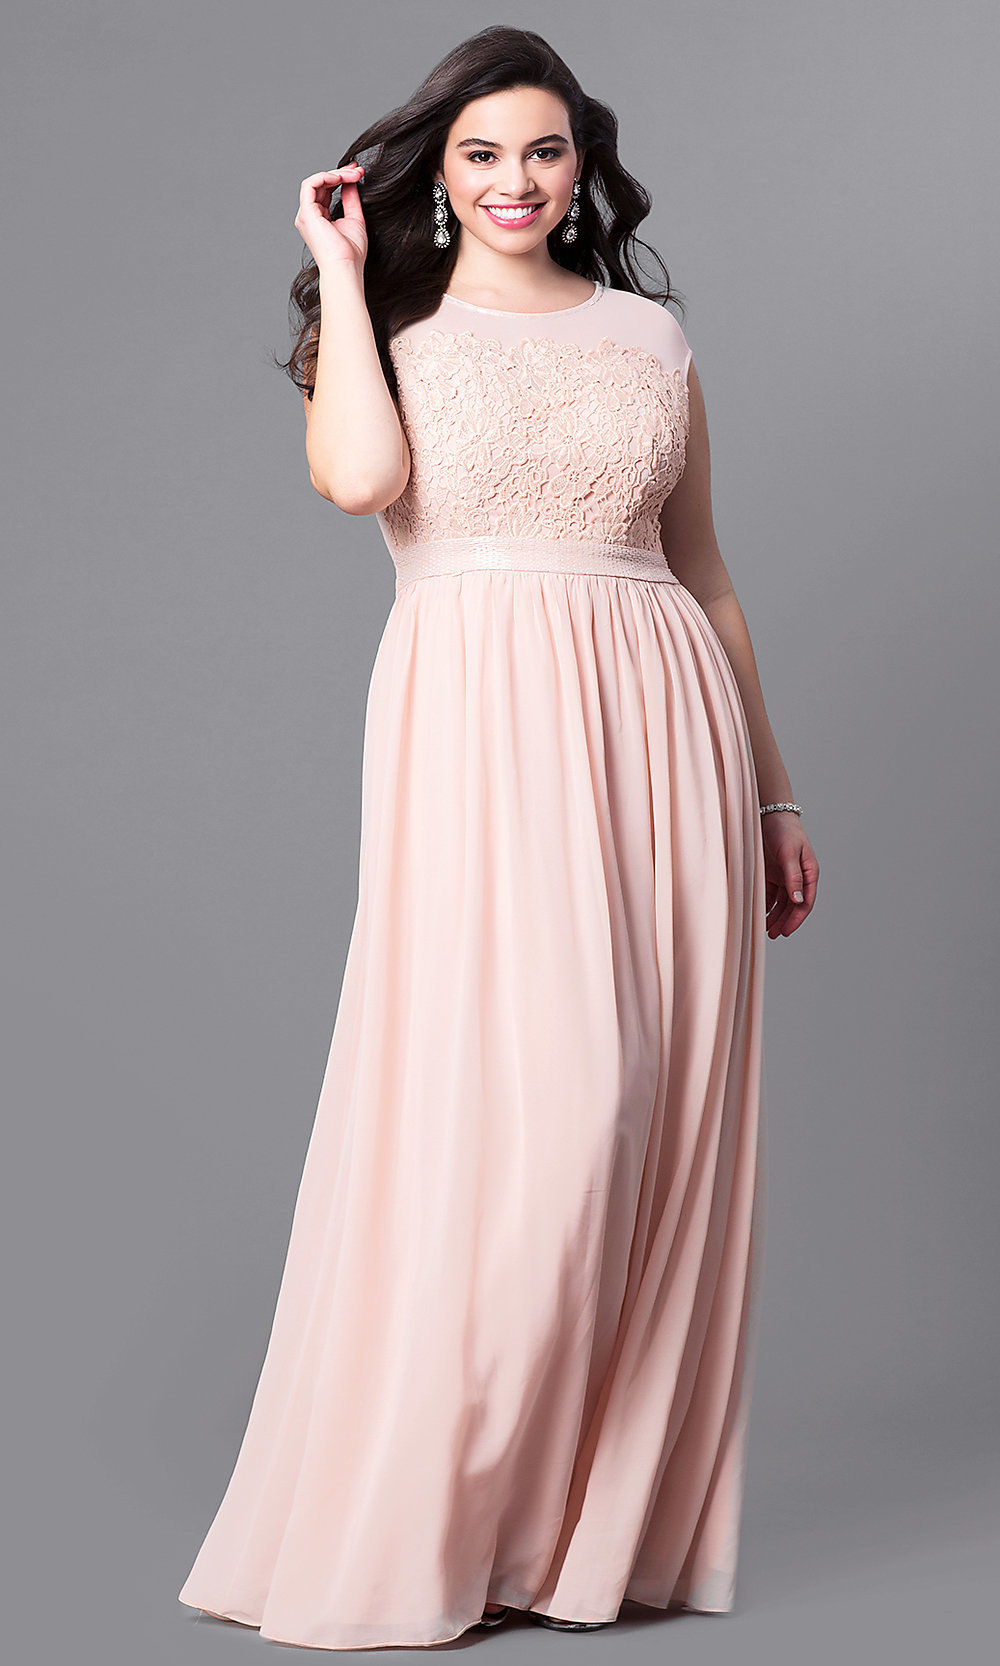 truemfilesb5q.gq offers Chiffon Plus Size Dress at cheap prices, so you can shop from a huge selection of Chiffon Plus Size Dress, FREE Shipping available worldwide.